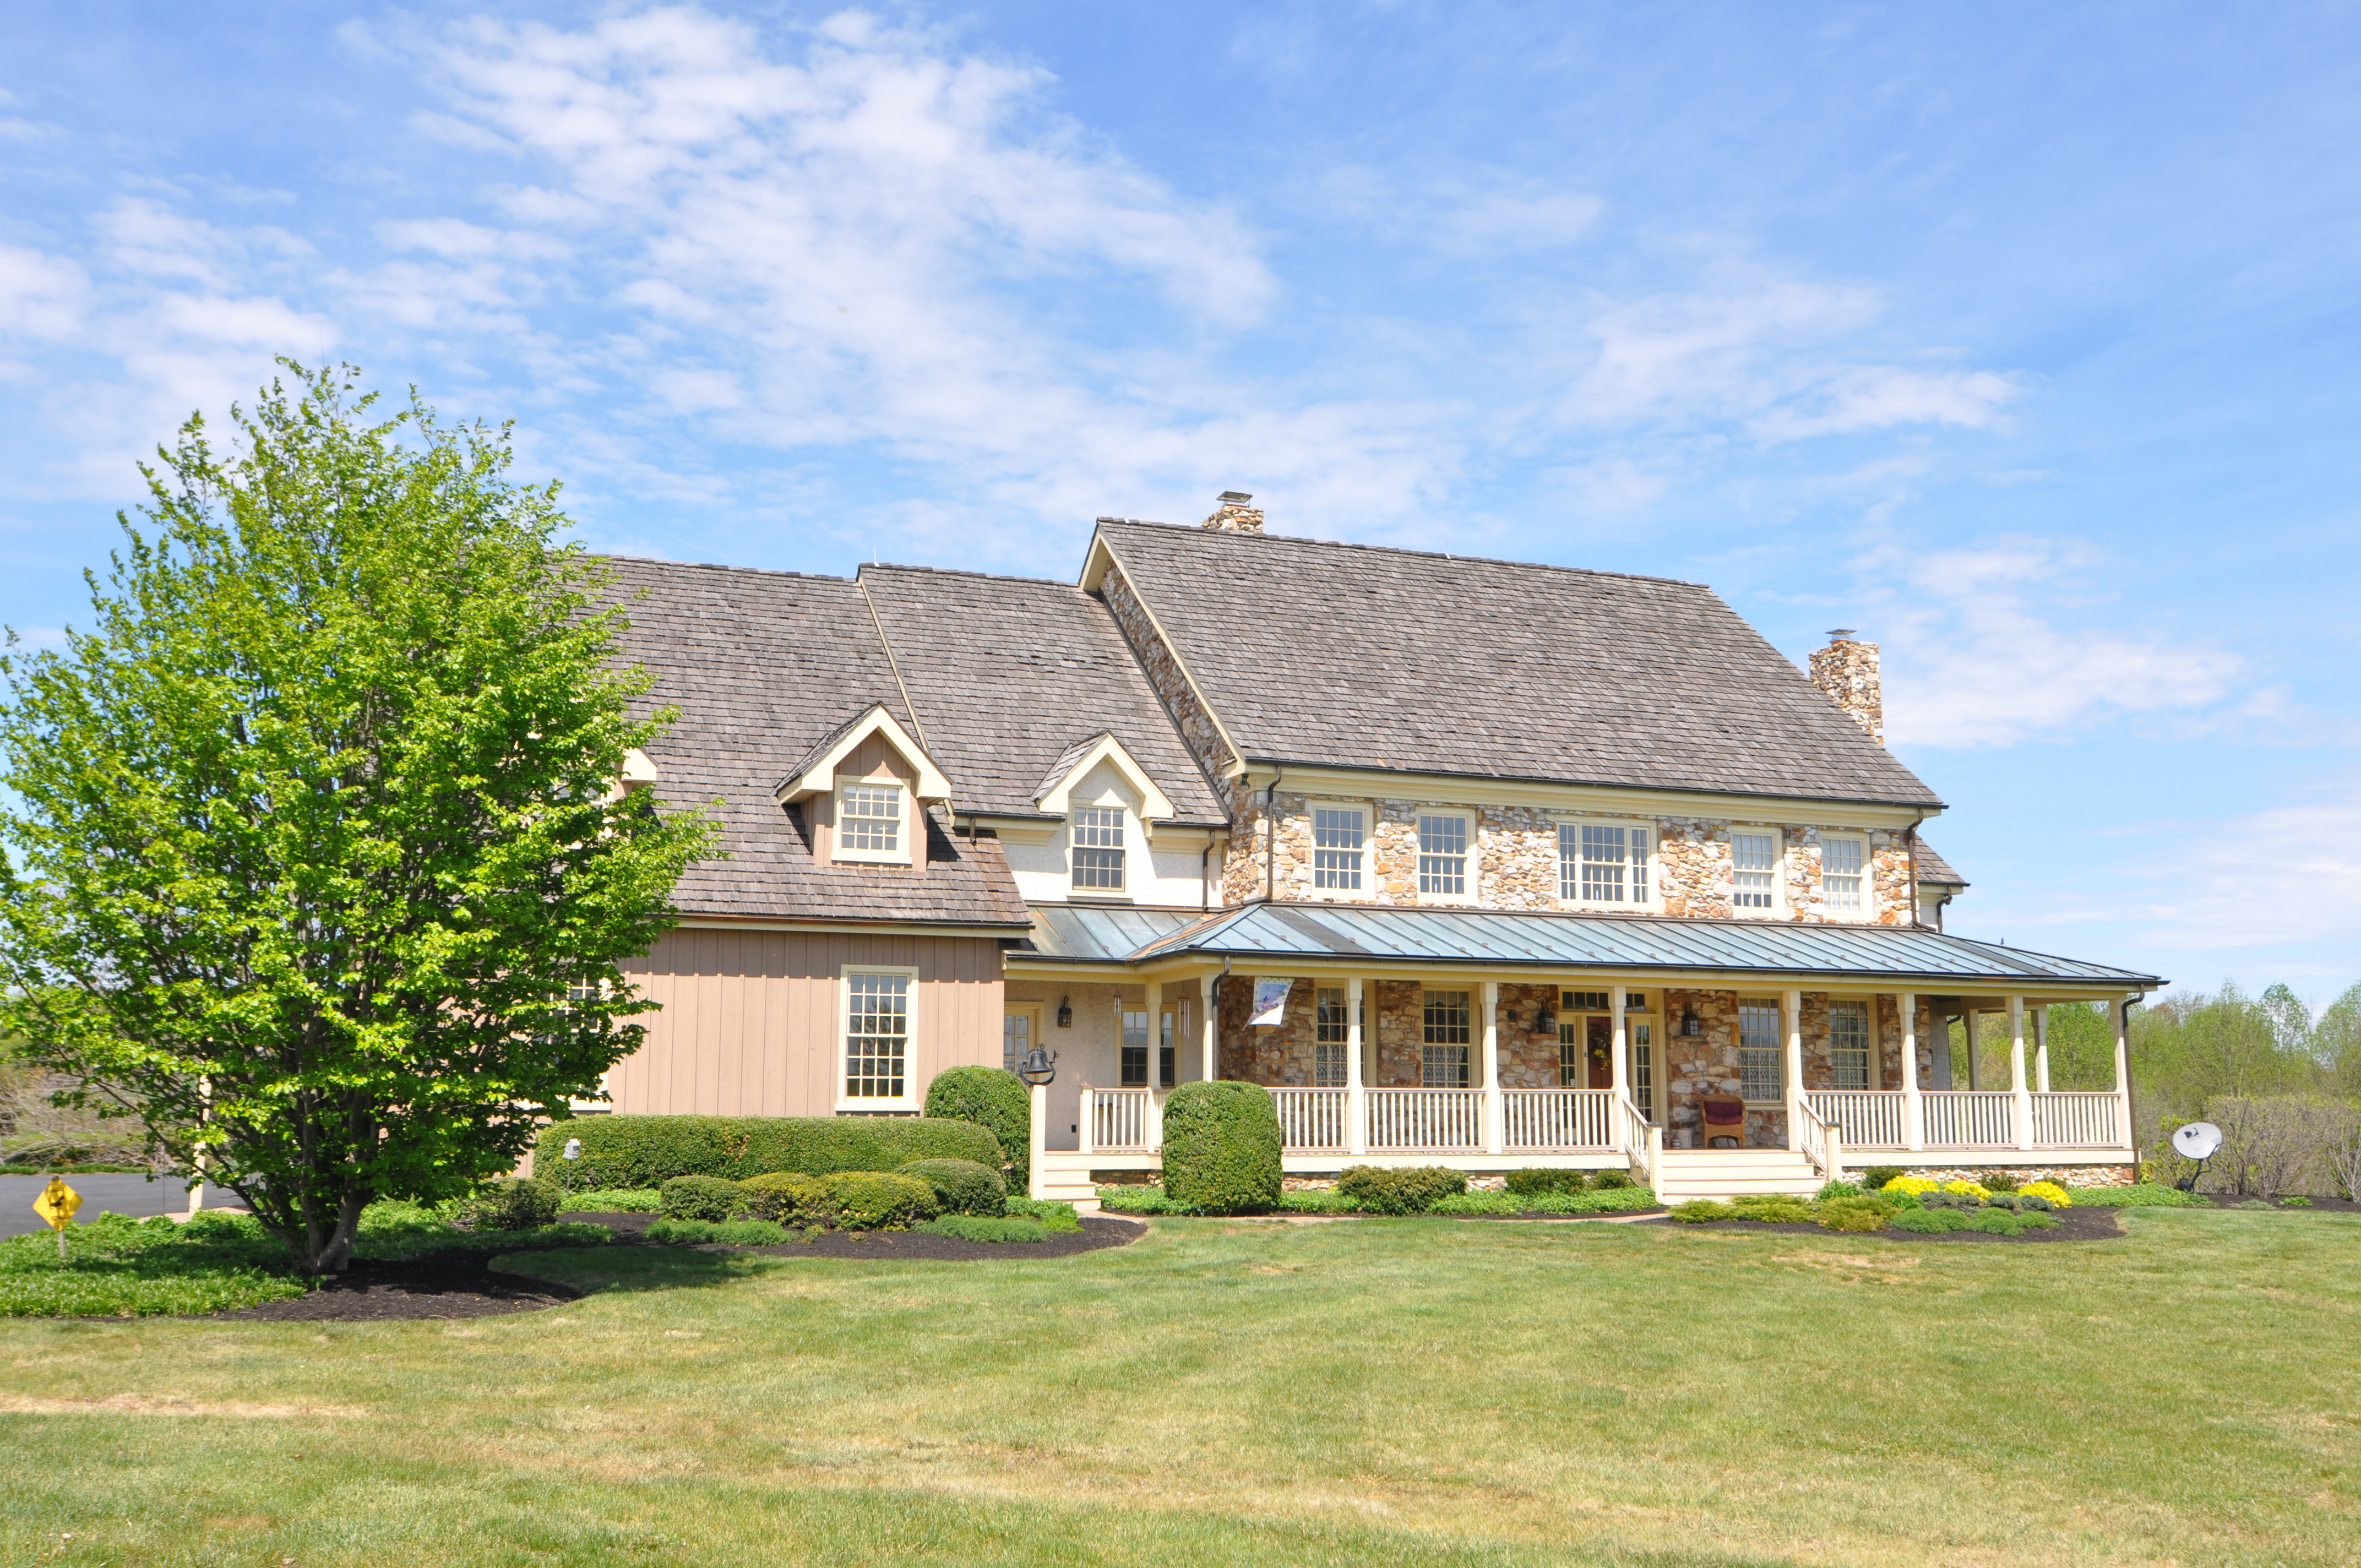 Single Family Home for Sale at Landenberg Hunt 146 Peacedale Road Landenberg, Pennsylvania 19350 United States